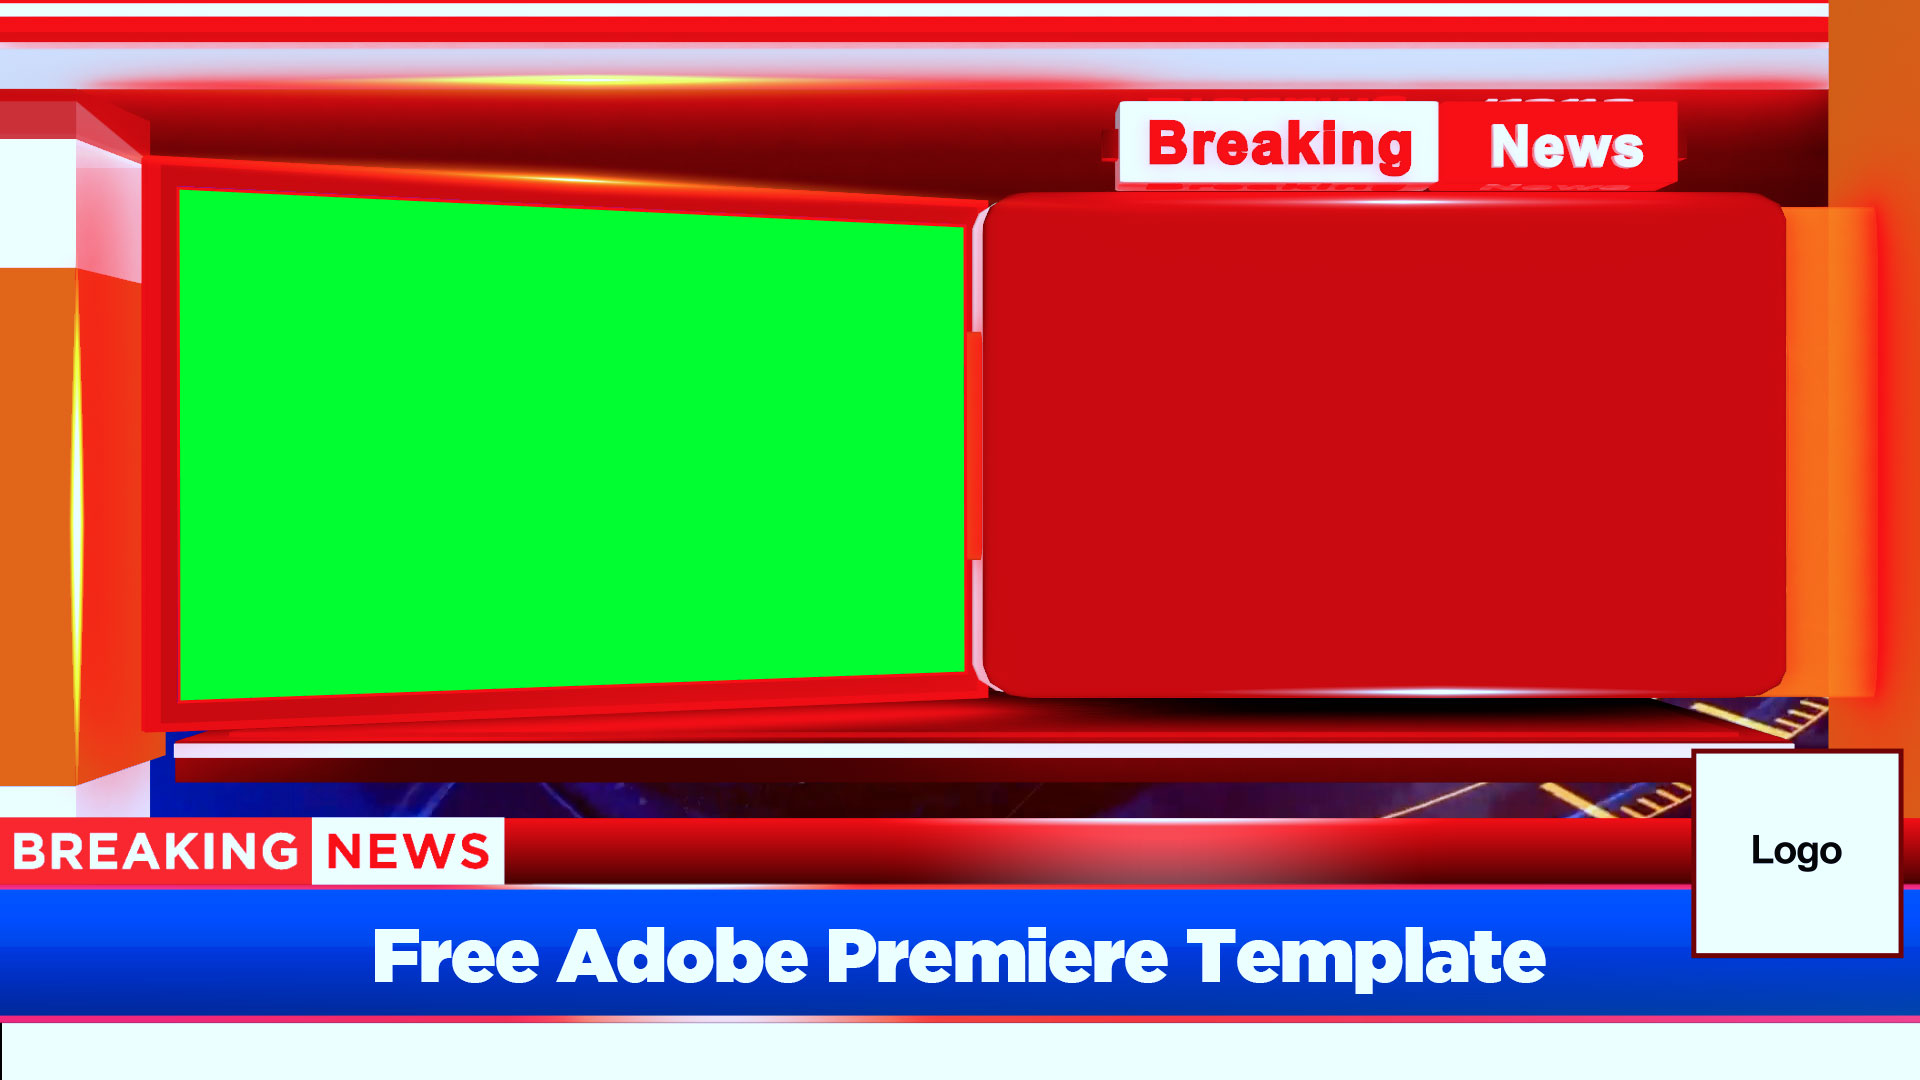 Breaking News Bumper free adobe premiere template by mtc tutorials